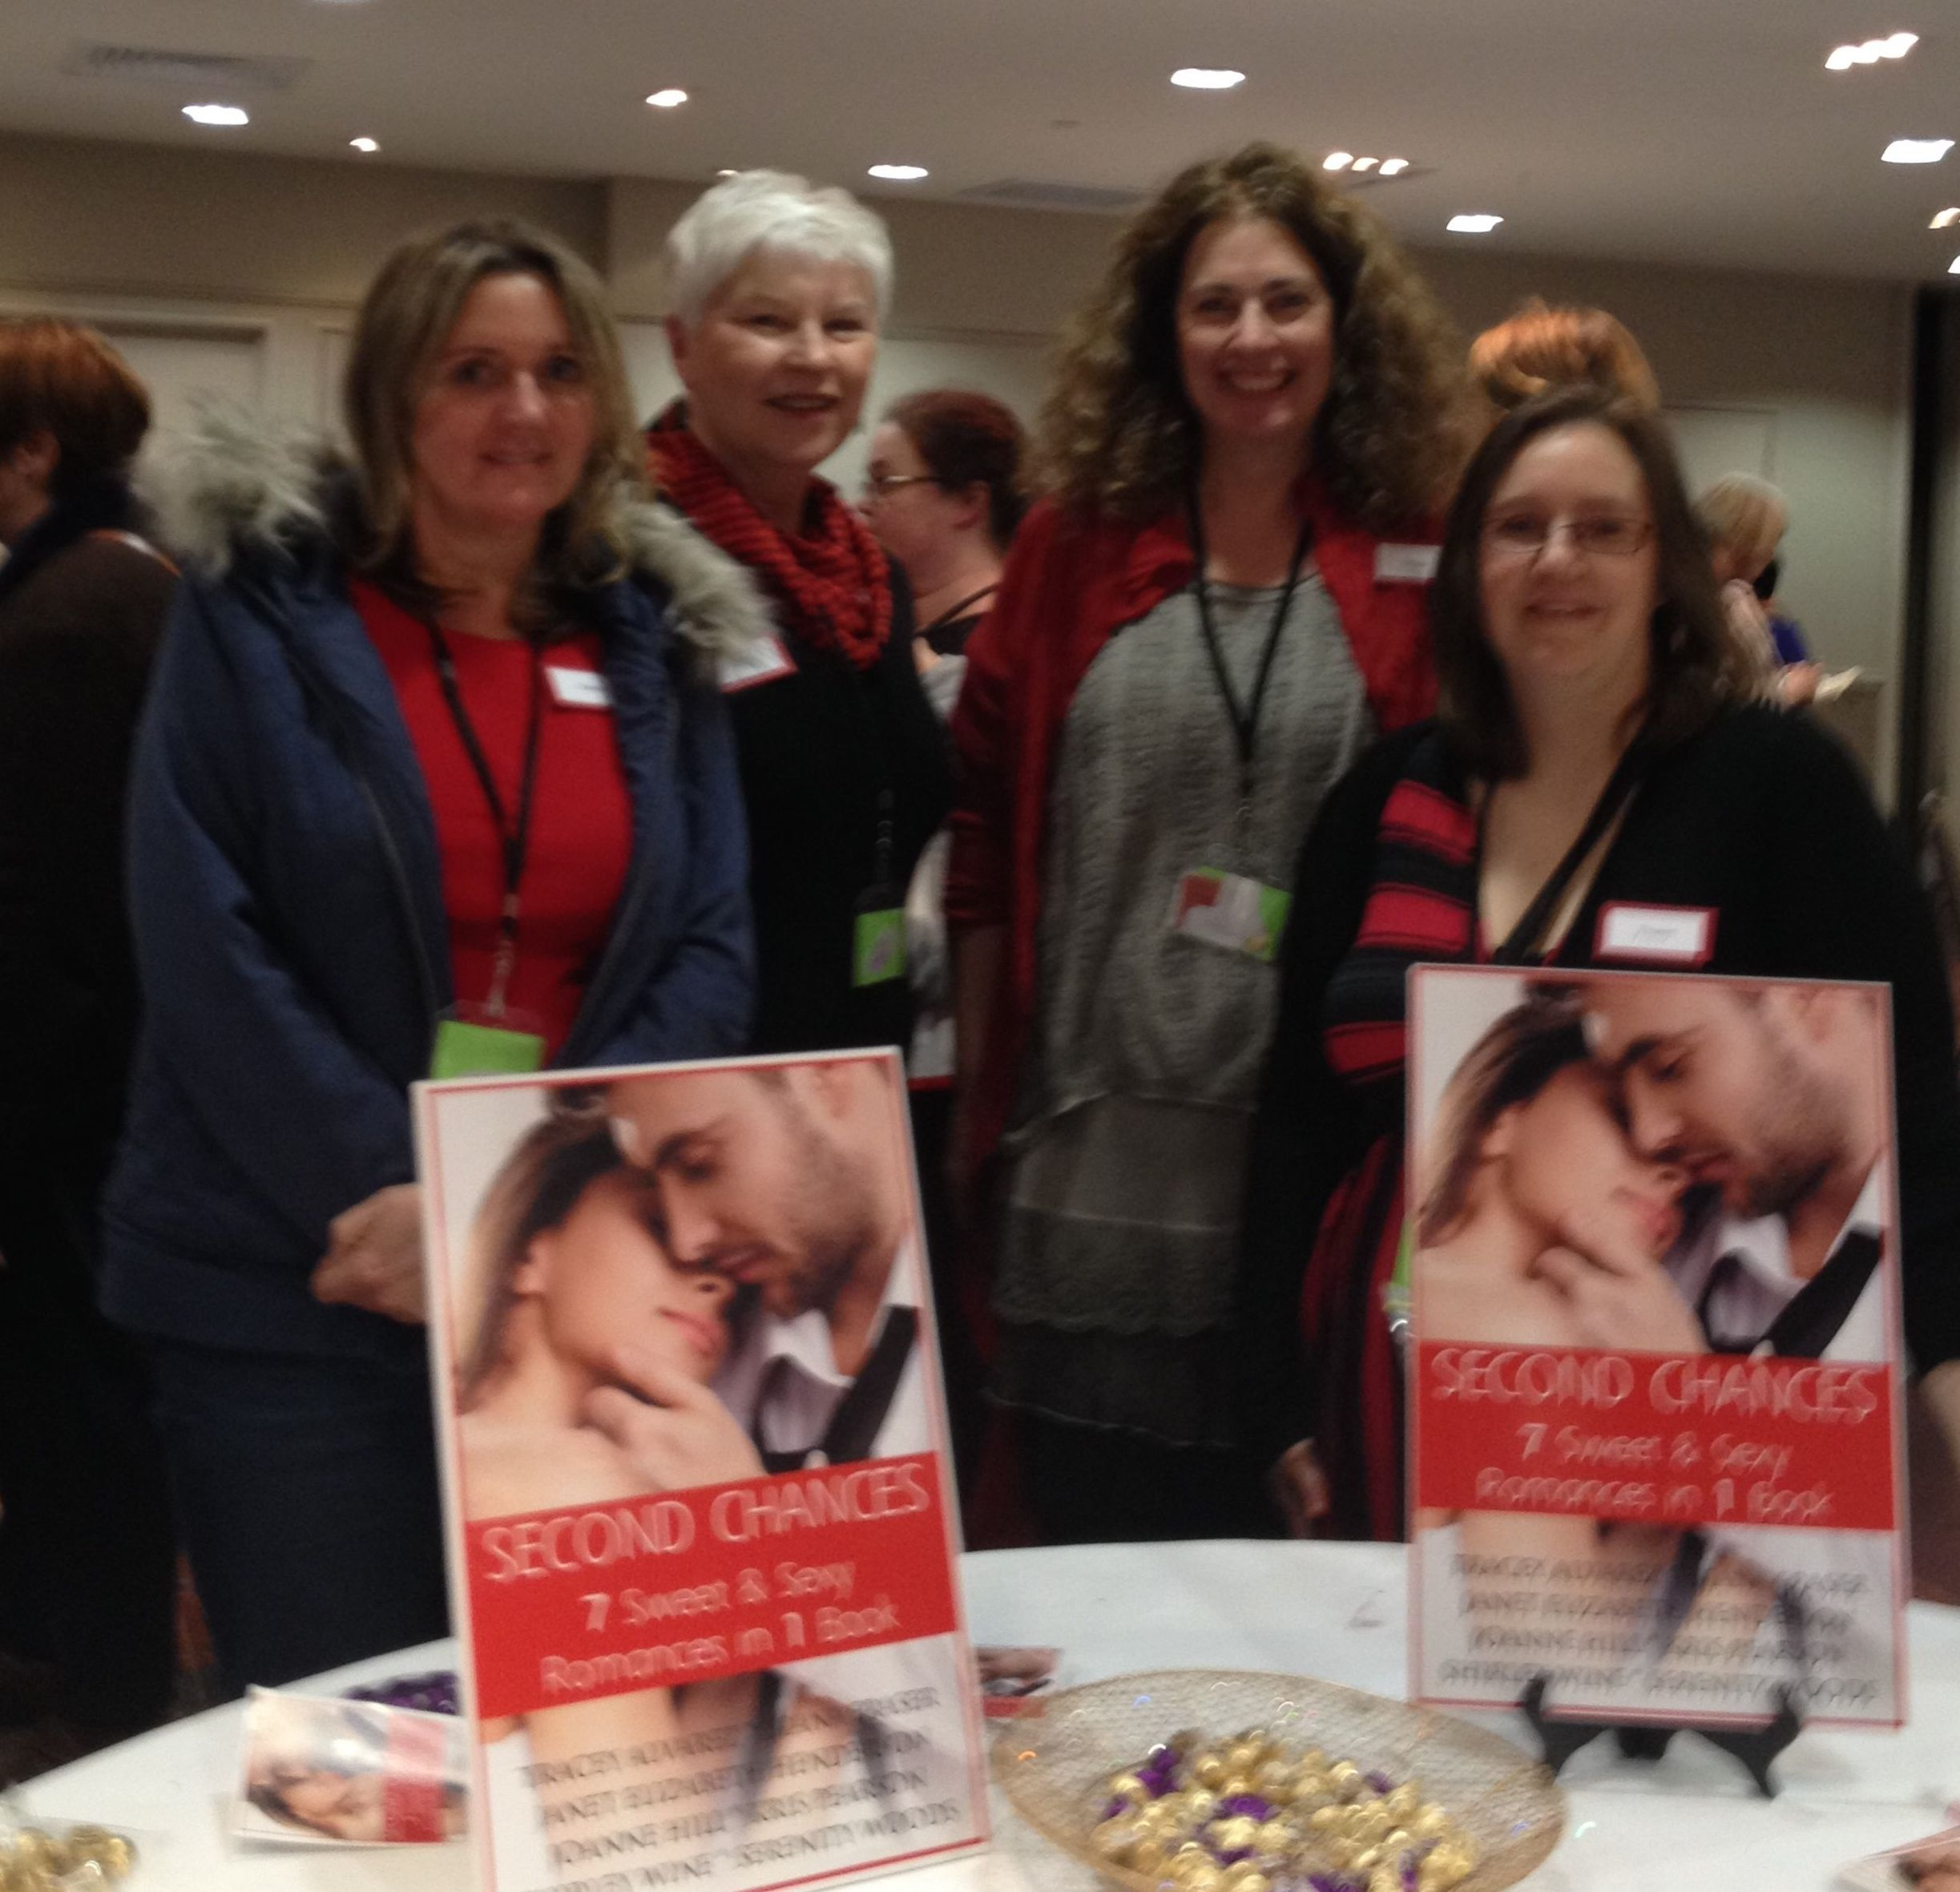 Four of the Kiwi Indie Authors at RWNZ 2014 Conference. From left to right: Joanne Hill, Kris Pearson, Diana Fraser, Tracey Alvarez